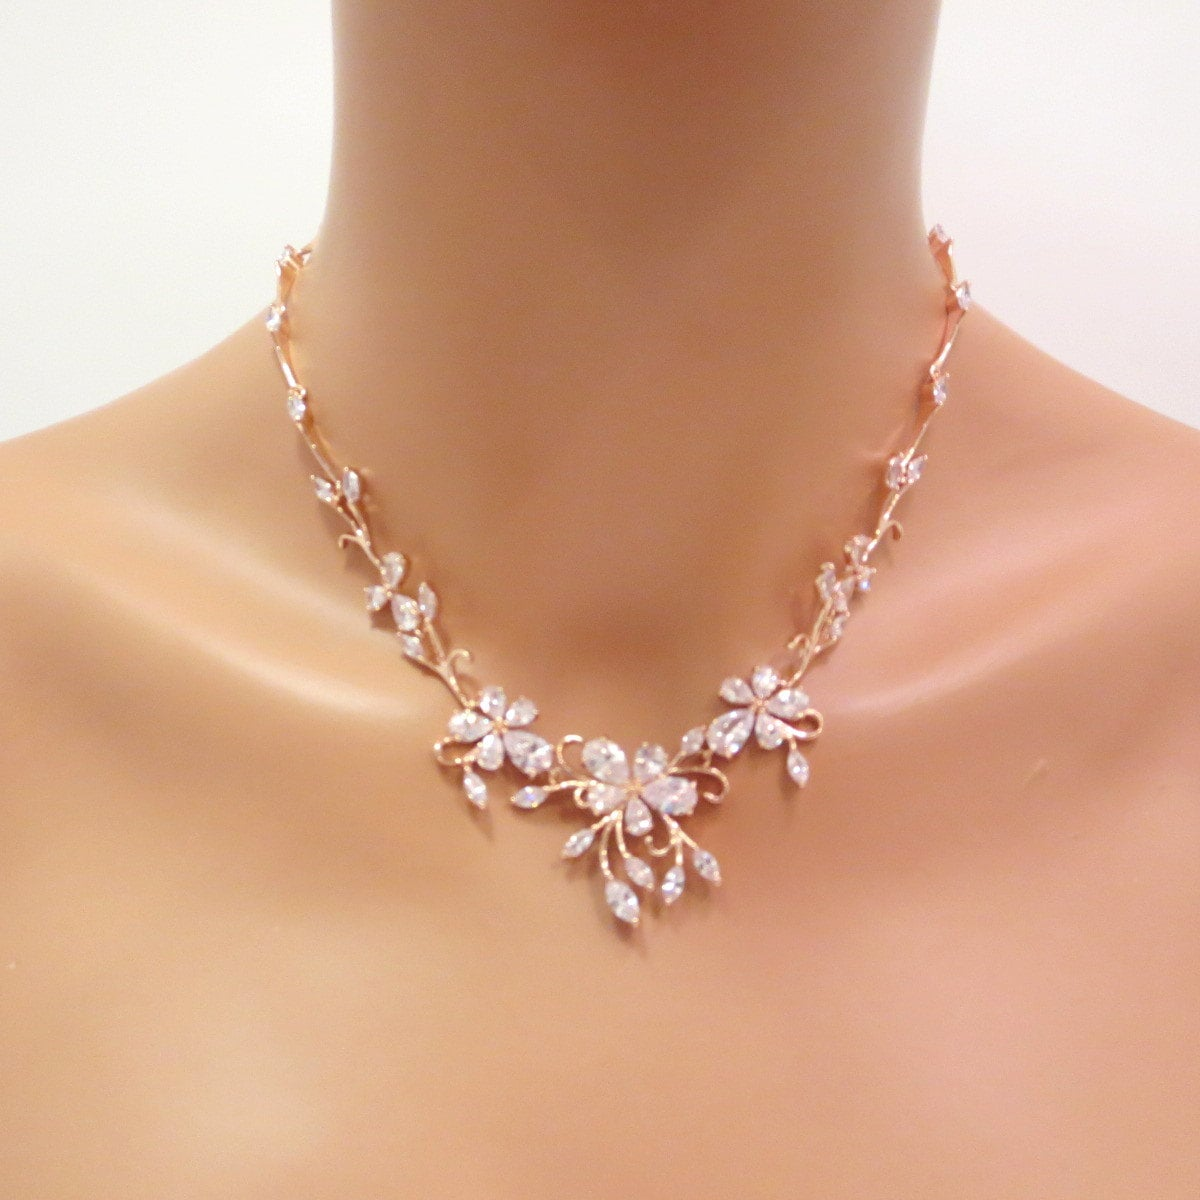 Rose gold necklace Bridal necklace Necklace Set Bridal